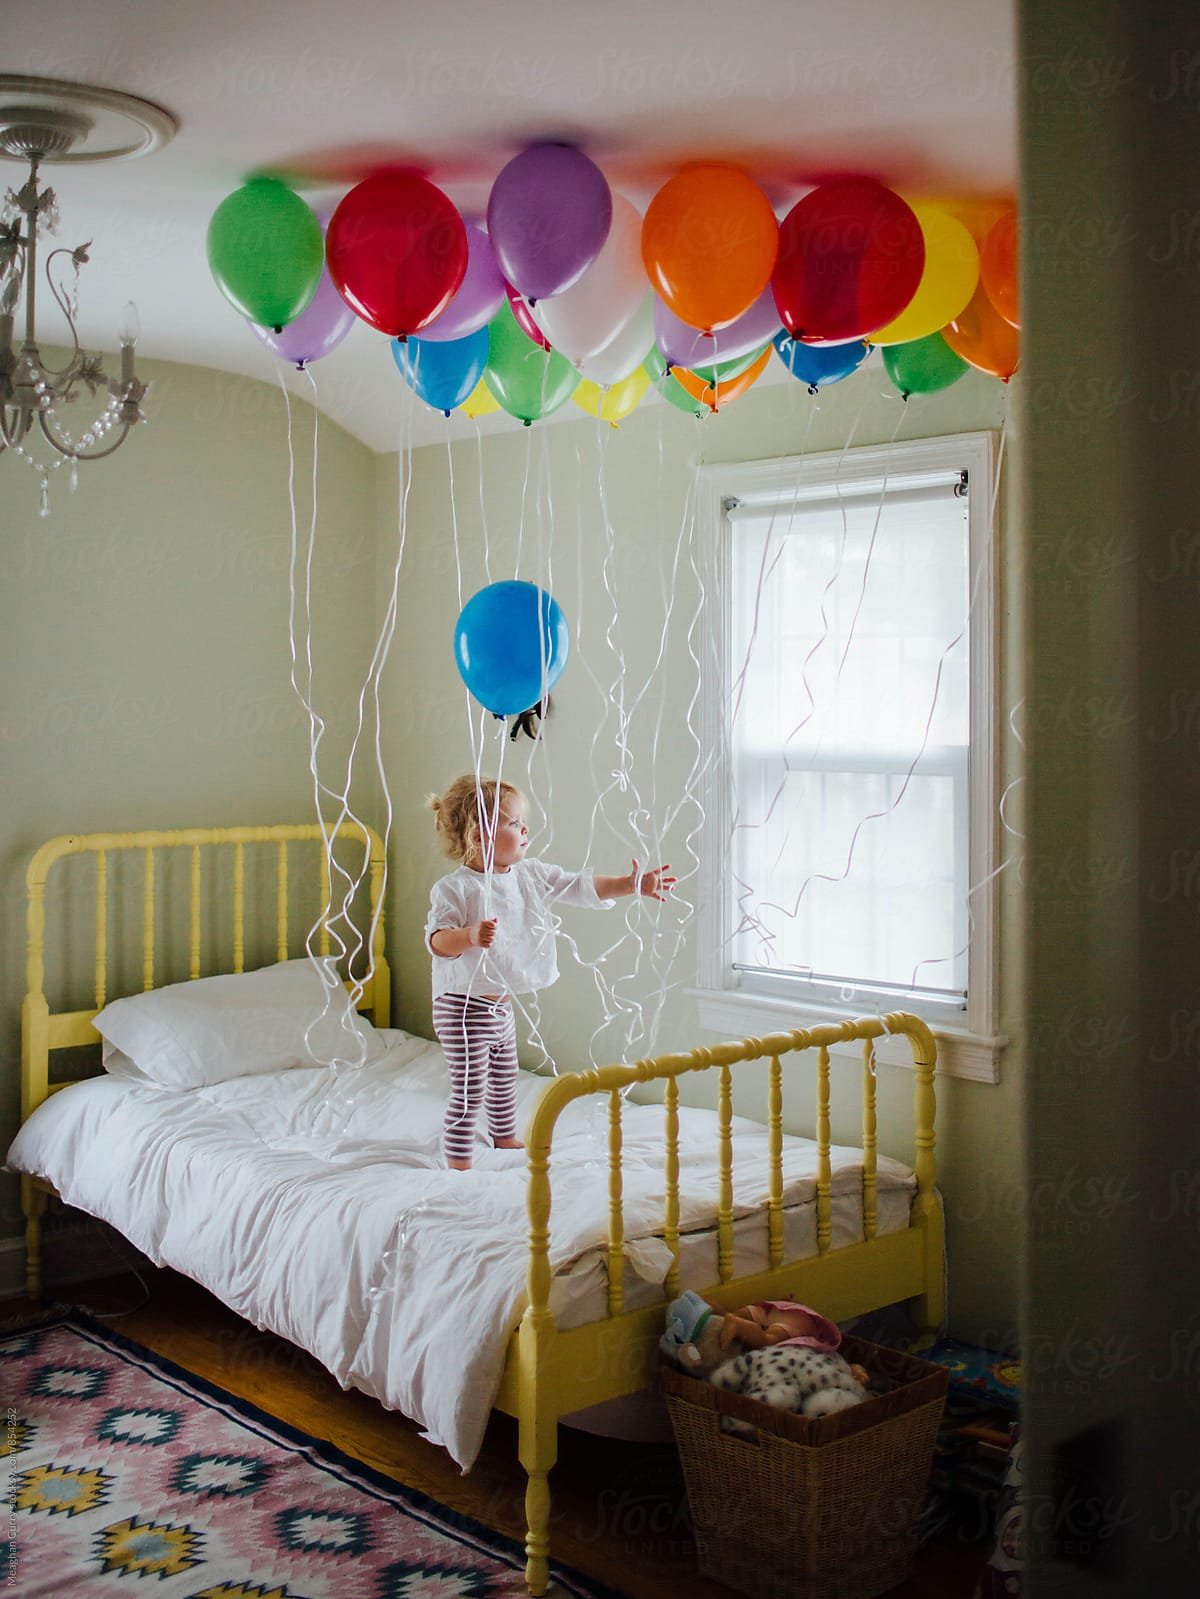 Little Girl On Her Bed Holding Birthday Balloons By Meaghan Curry For Stocksy United